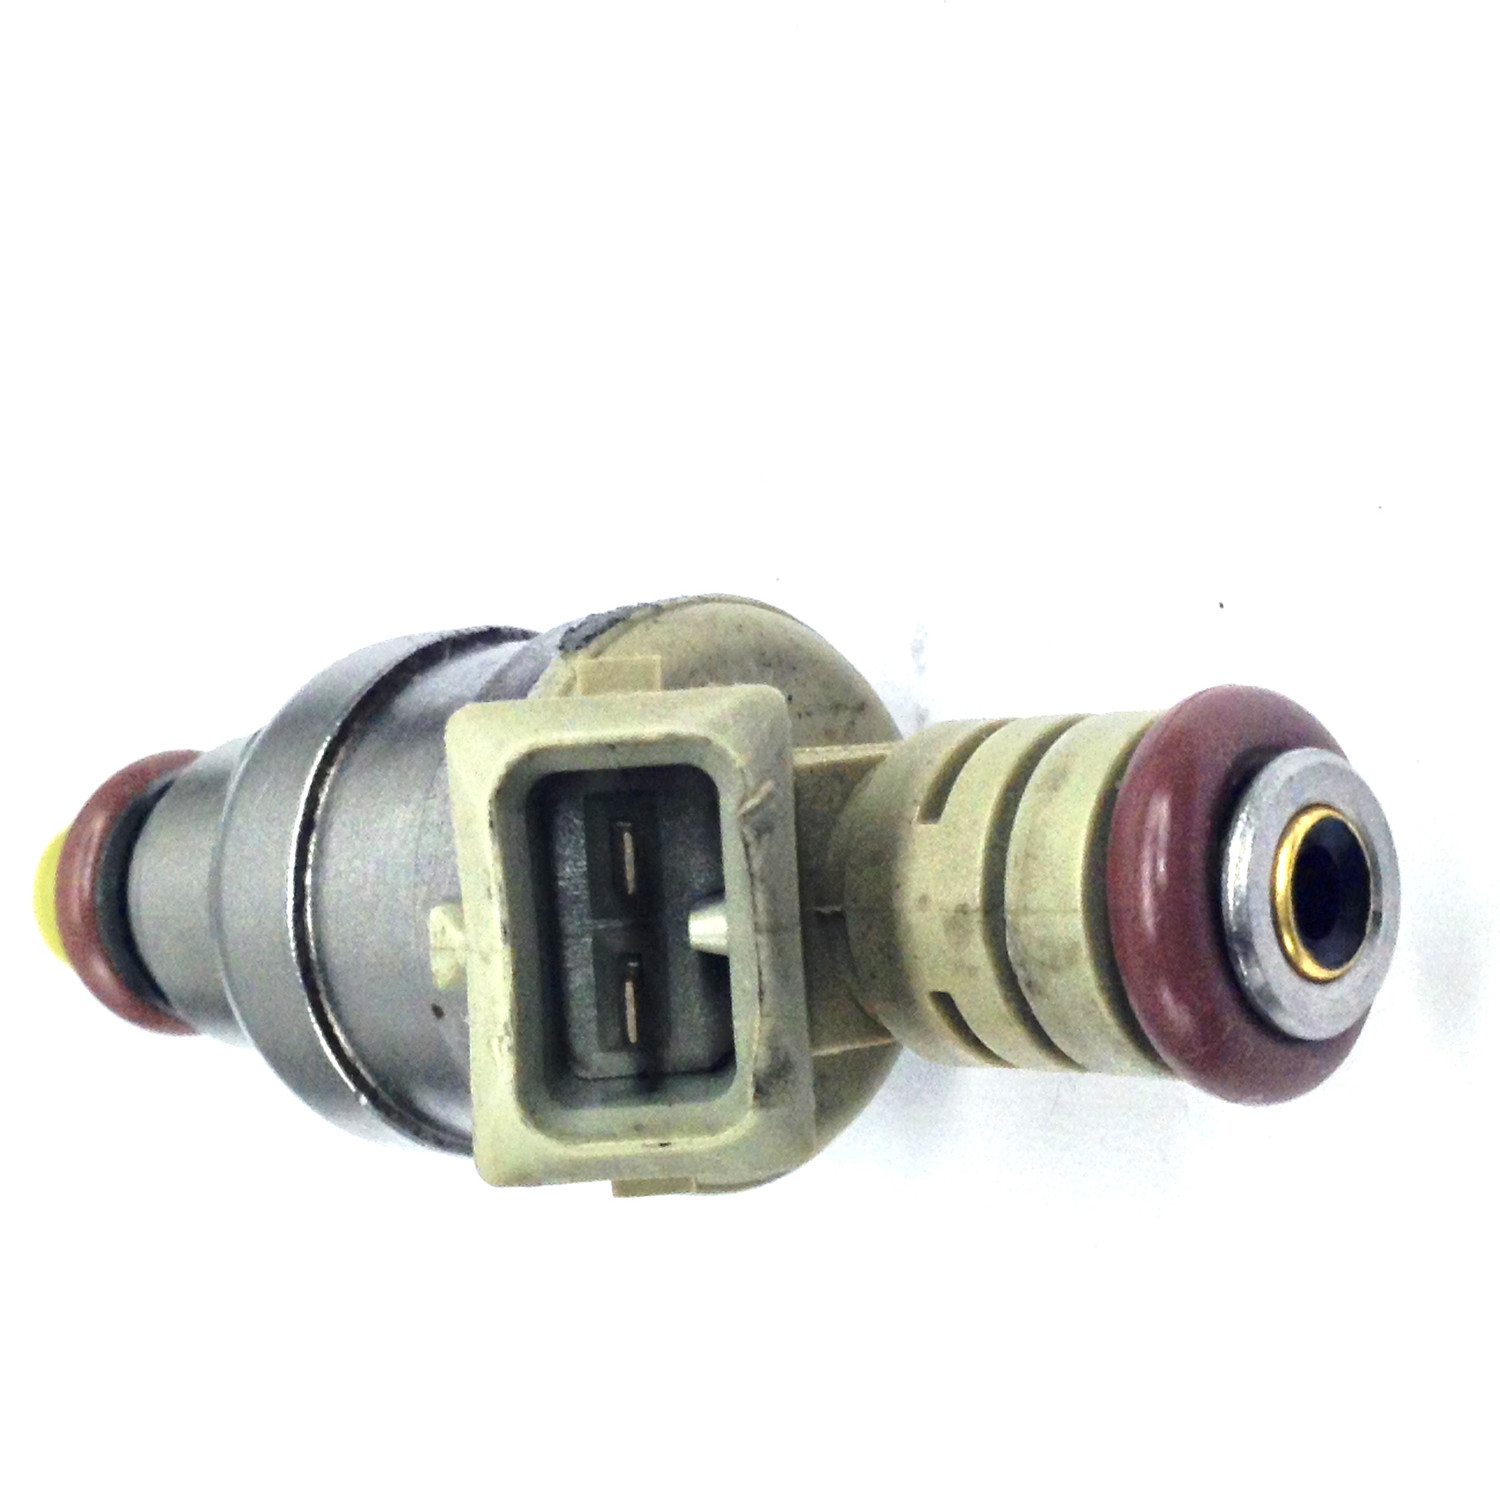 UNITED REMANUFACTURING CO - Fuel Injector - URC 7108